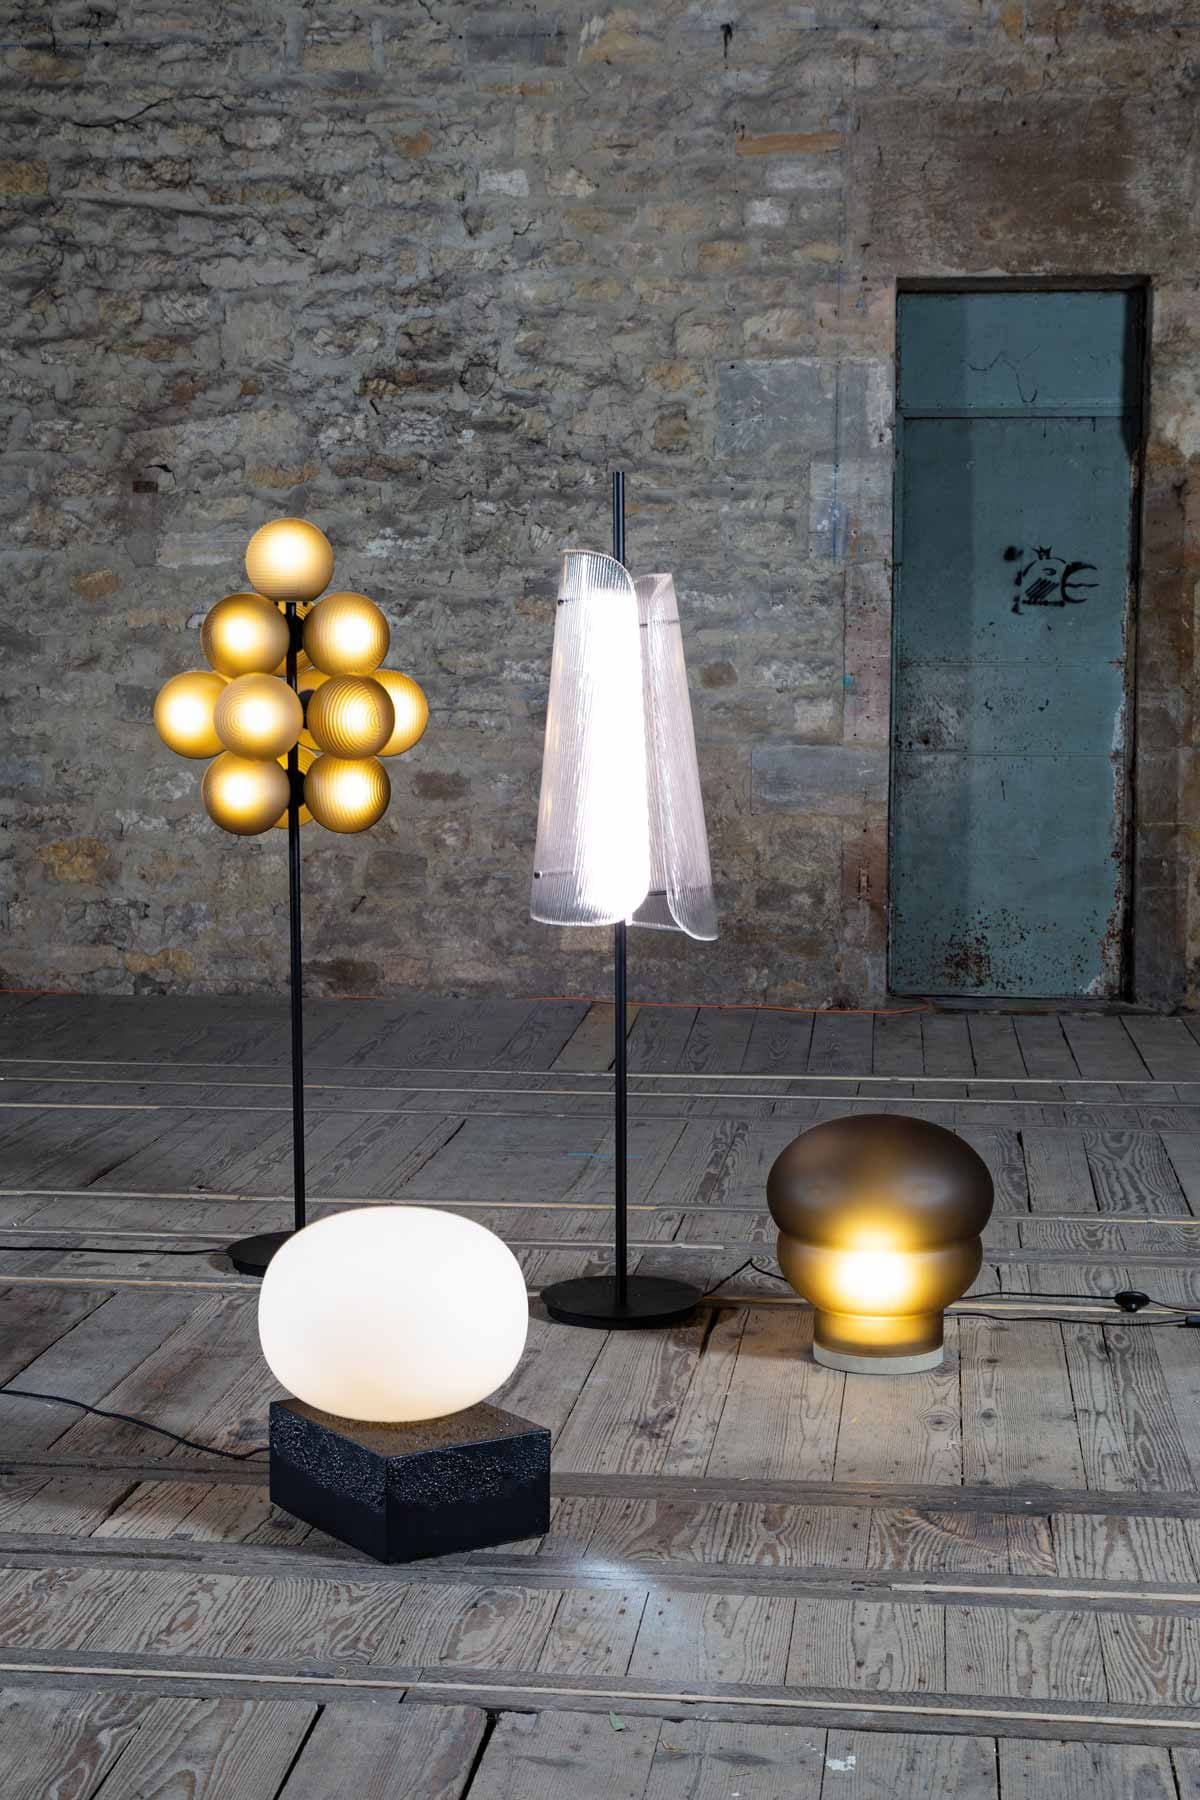 New Lighting Collection from Pulpo at Maison & Objet 2019 | Yellowtrace